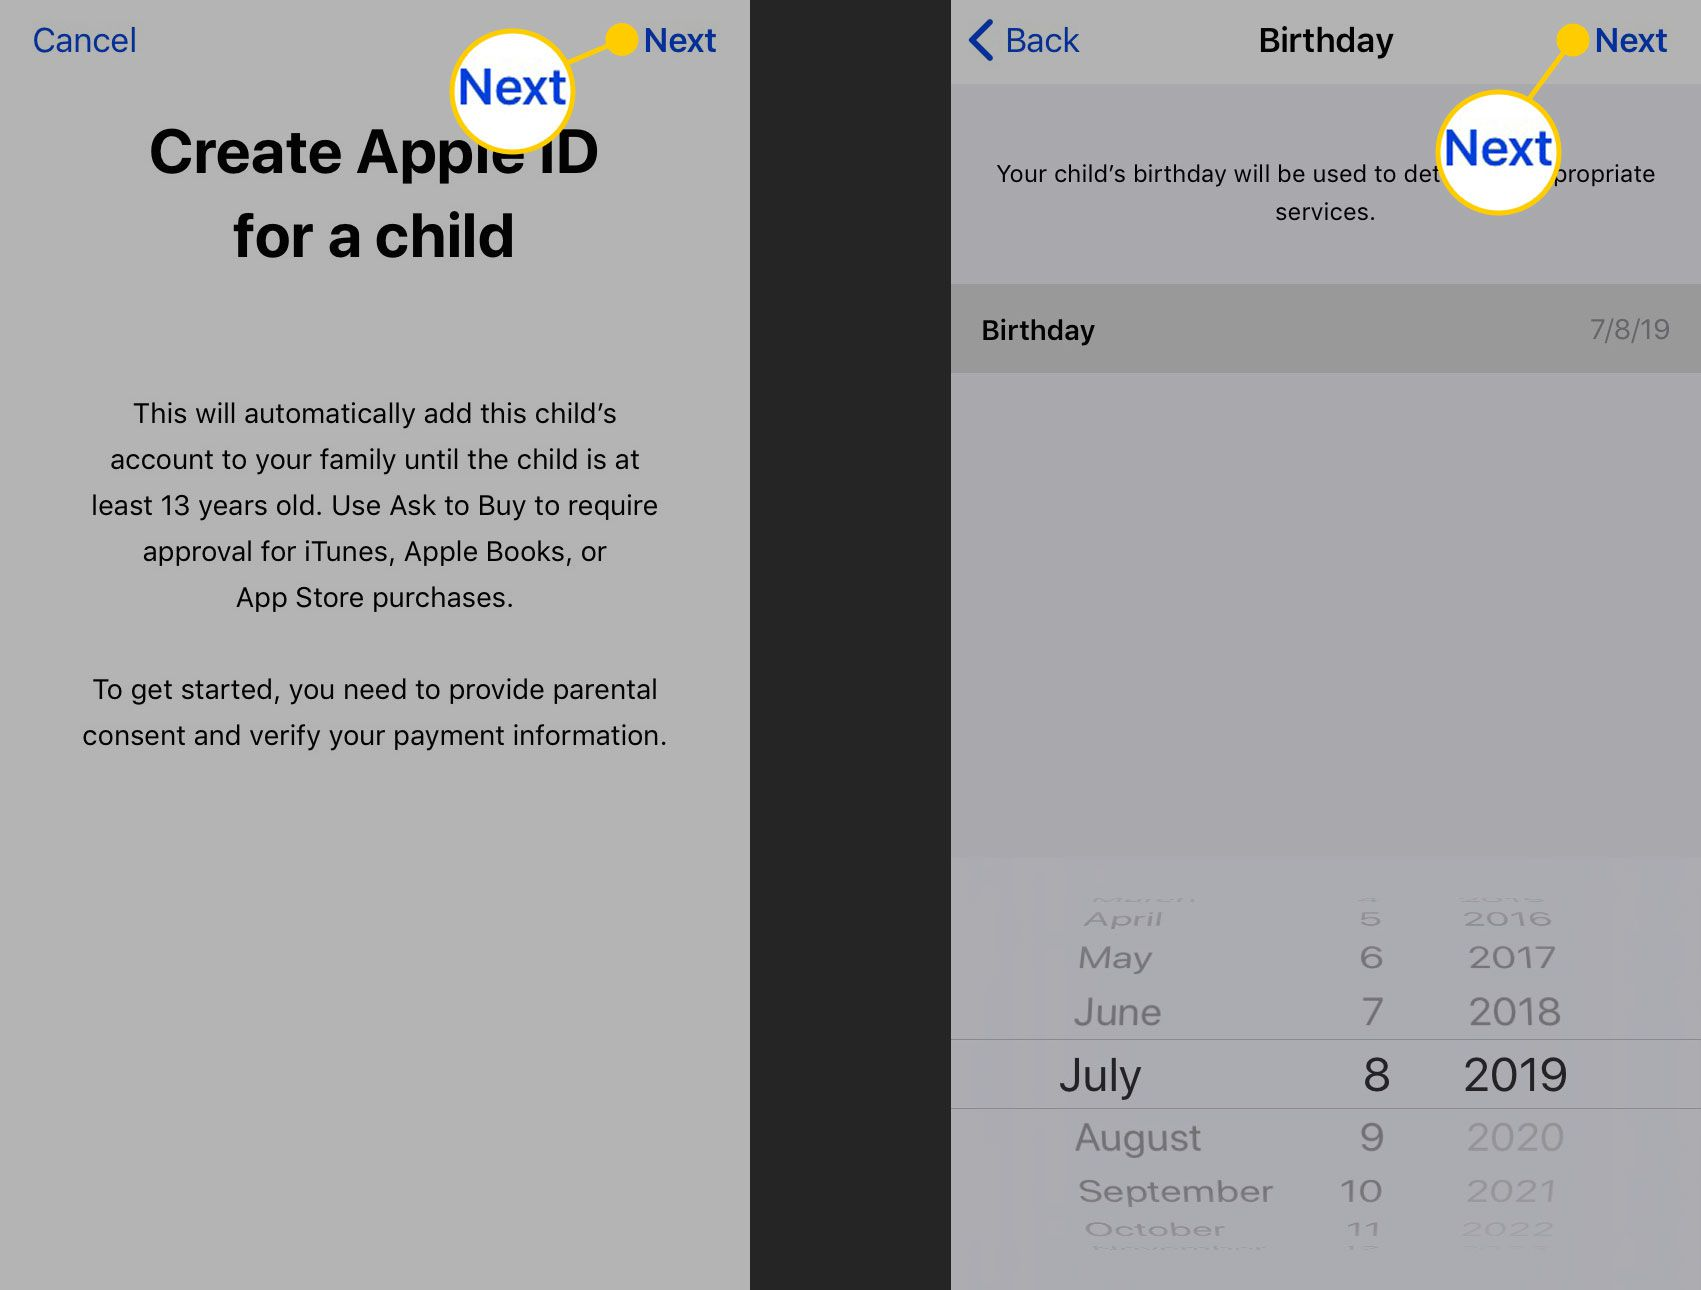 Entering a birthday for a child's Apple ID